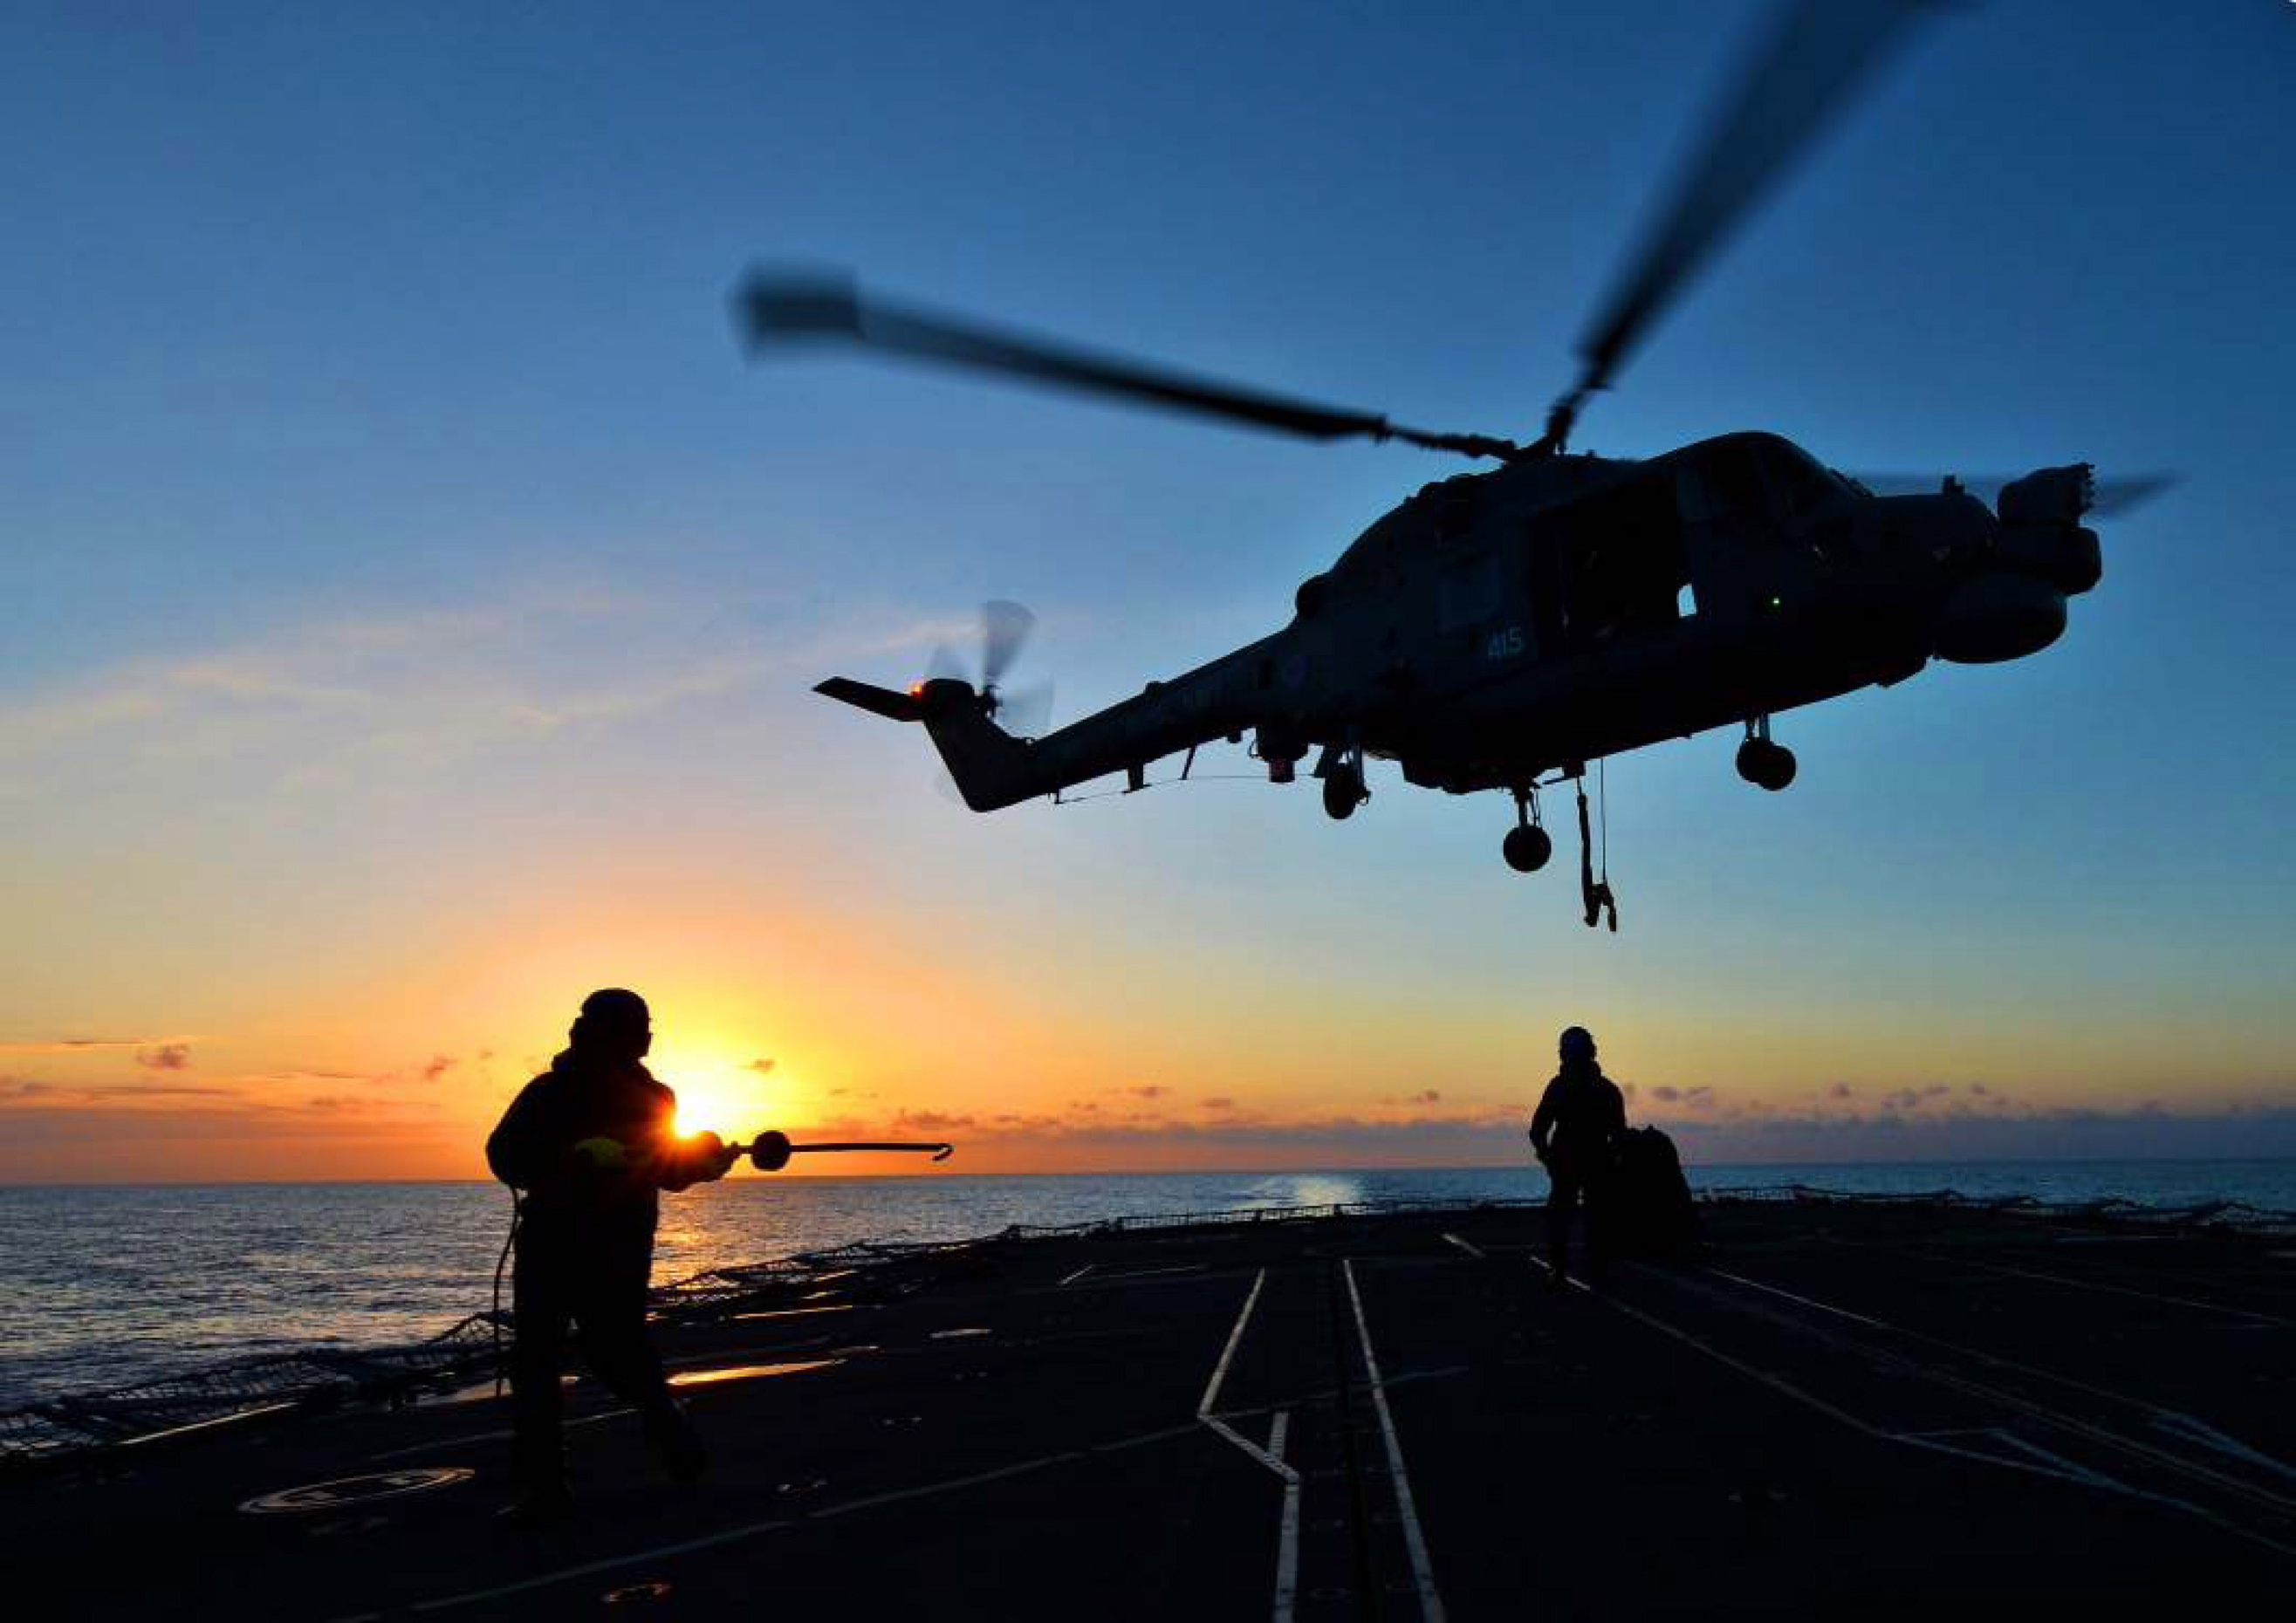 file:lynx helicopter hovers over hms monmouth at sunset mod 45154614